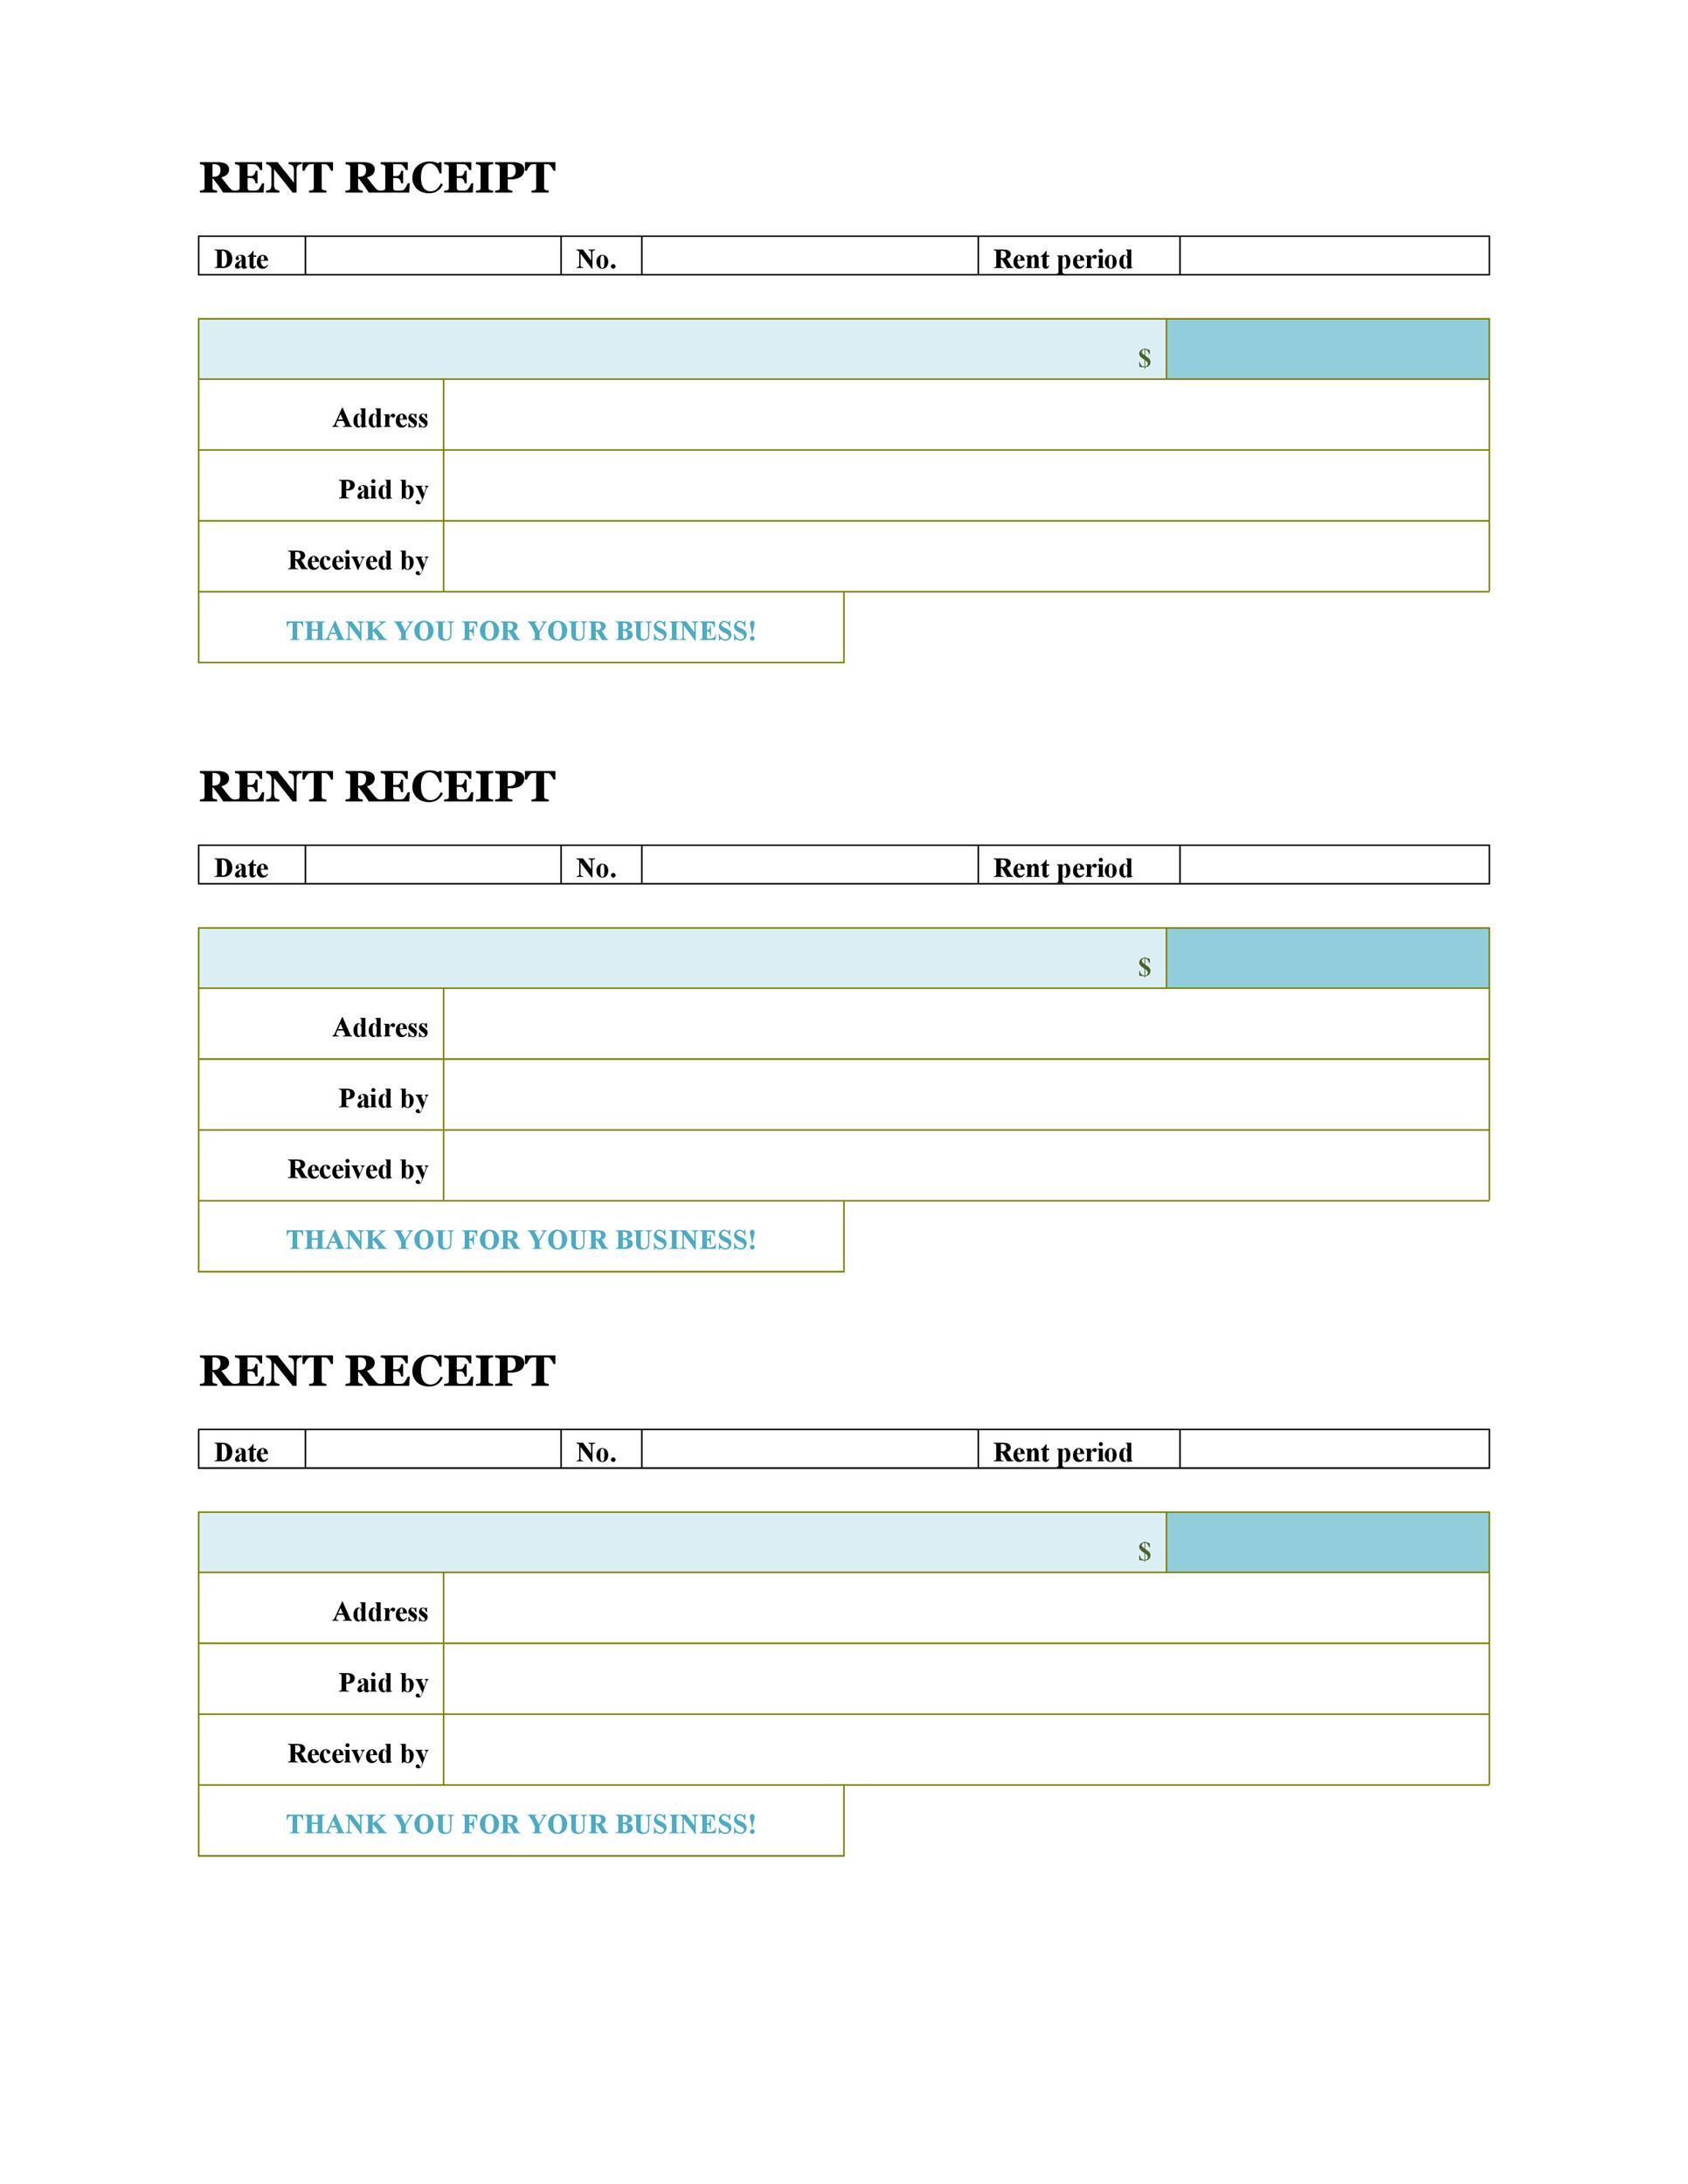 50 Free Receipt Templates Cash Sales Donation Taxi – Rent Receipt Sample